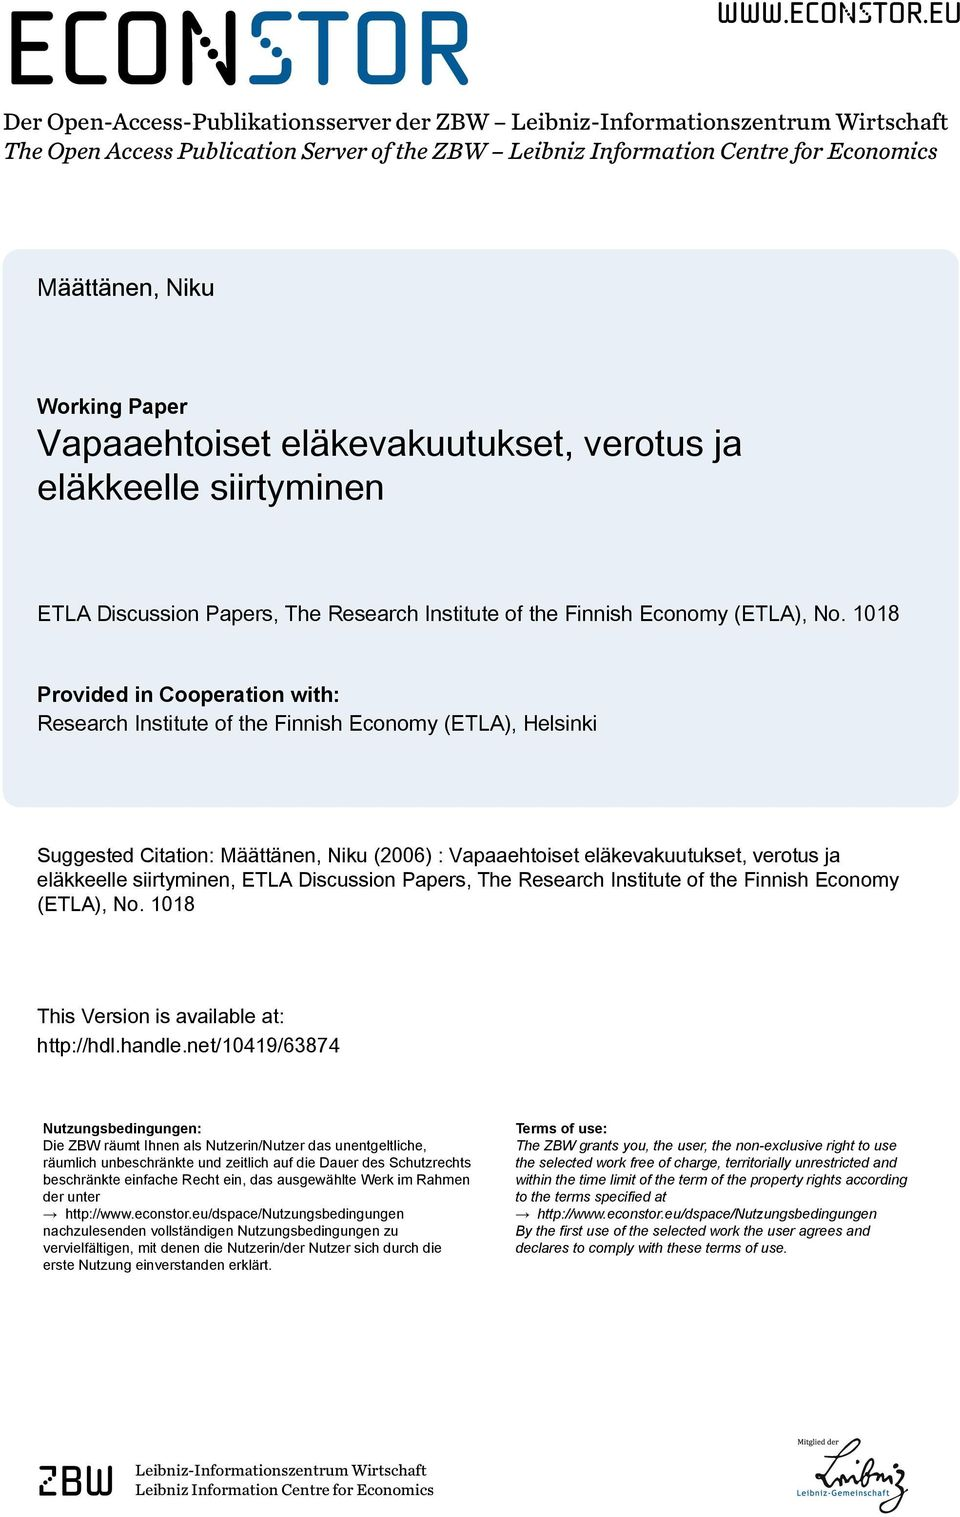 eu Der Open-Access-Publikationsserver der ZBW Leibniz-Informationszentrum Wirtschaft The Open Access Publication Server of the ZBW Leibniz Information Centre for Economics Määttänen, Niku Working